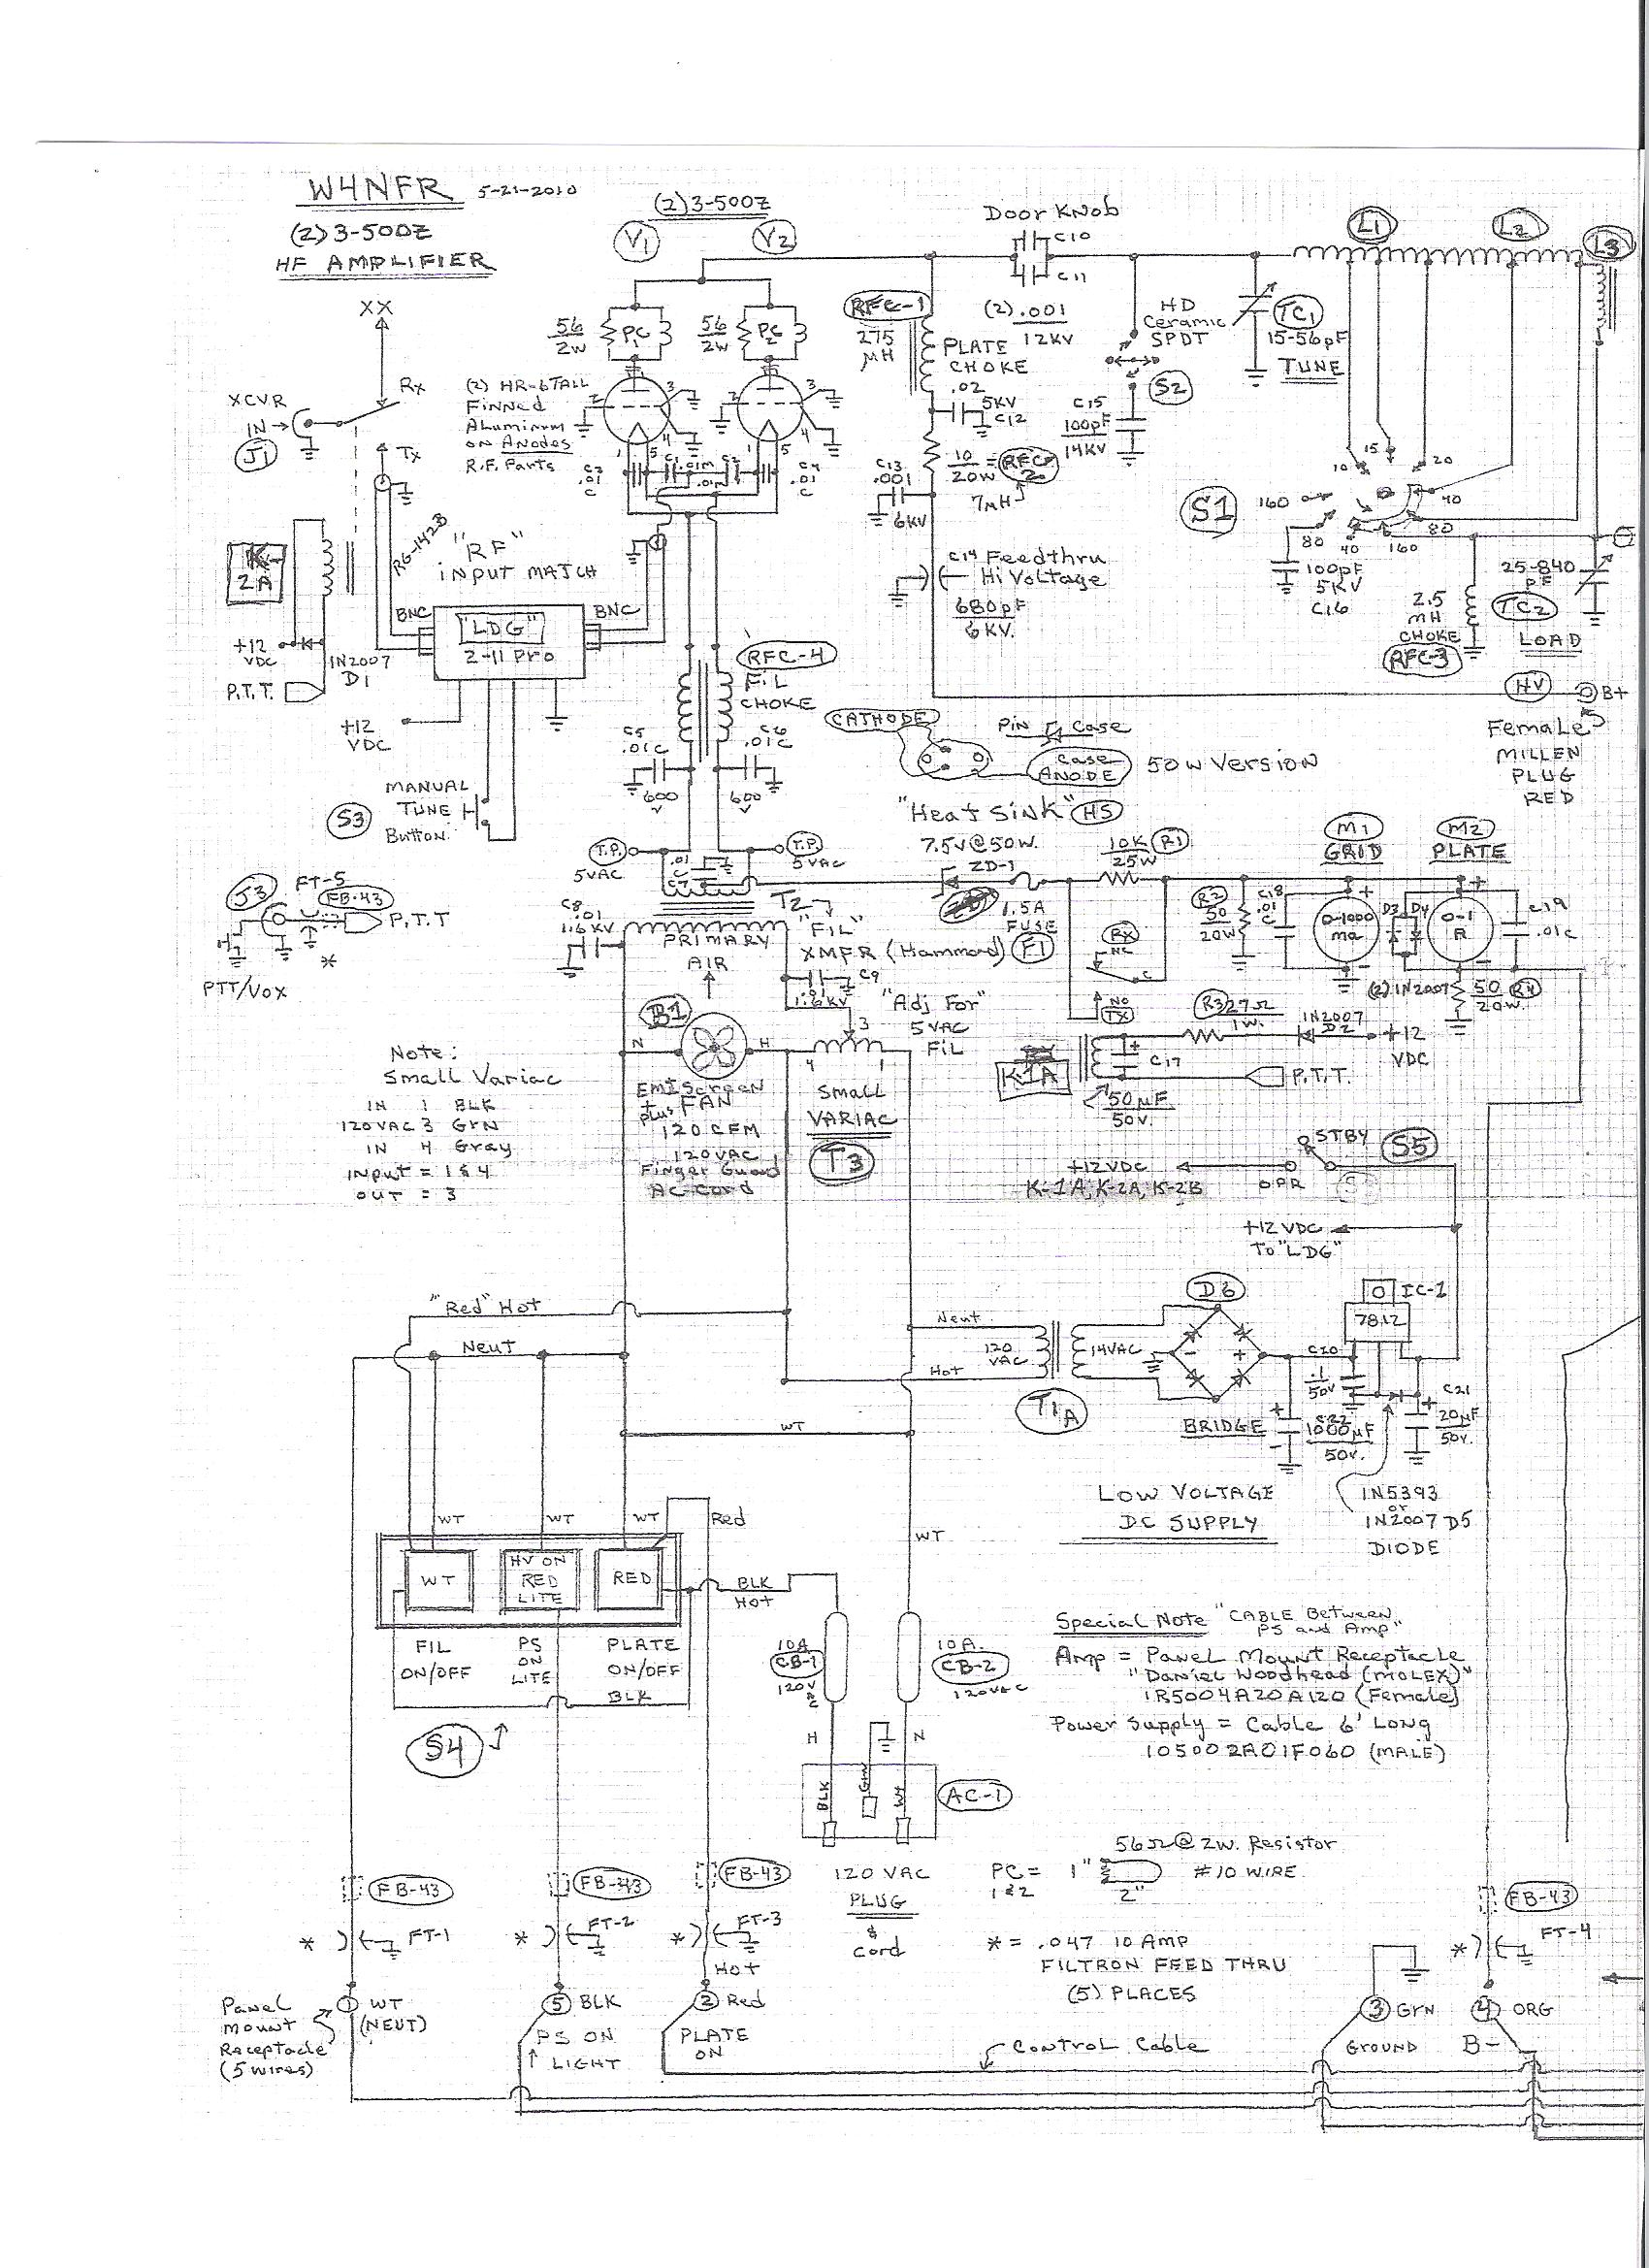 3 500Z Amplifier Schematic 2 3 500z amplifier project,Microwave Transformer Arc Capacitor Wiring Diagram